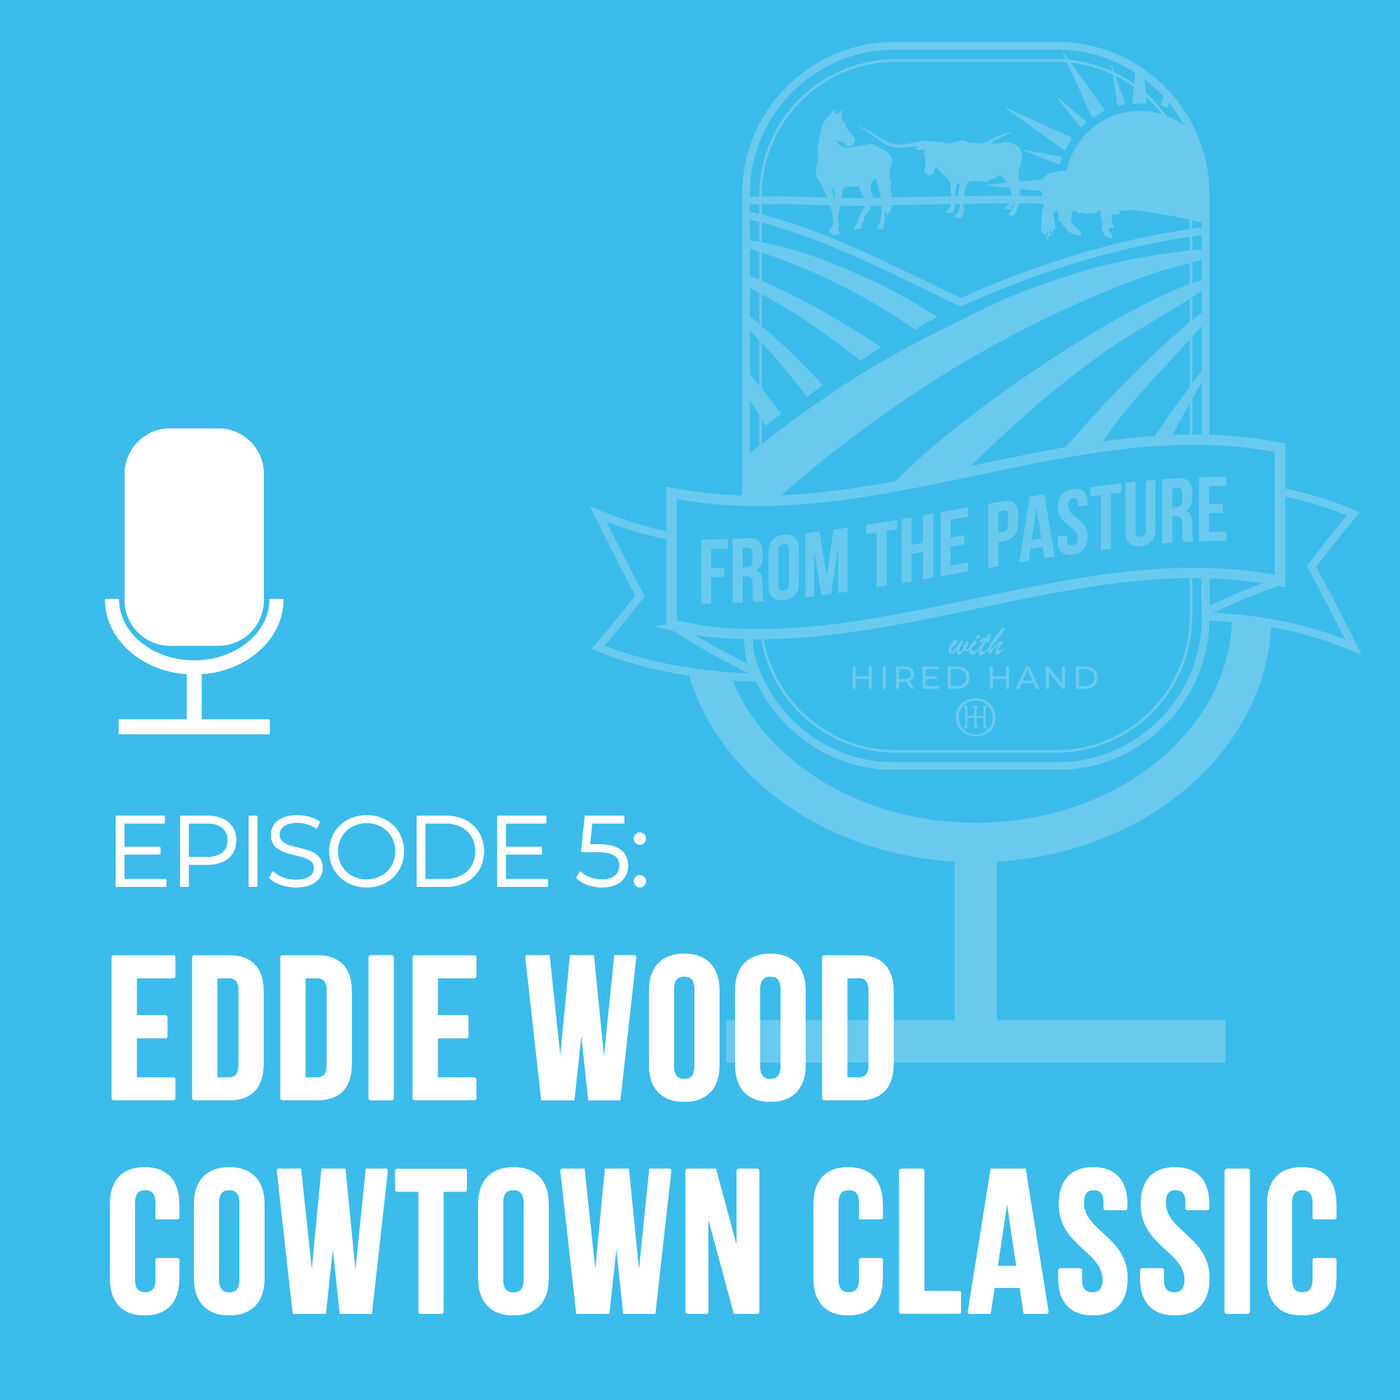 The Eddie Wood Cowtown Classic